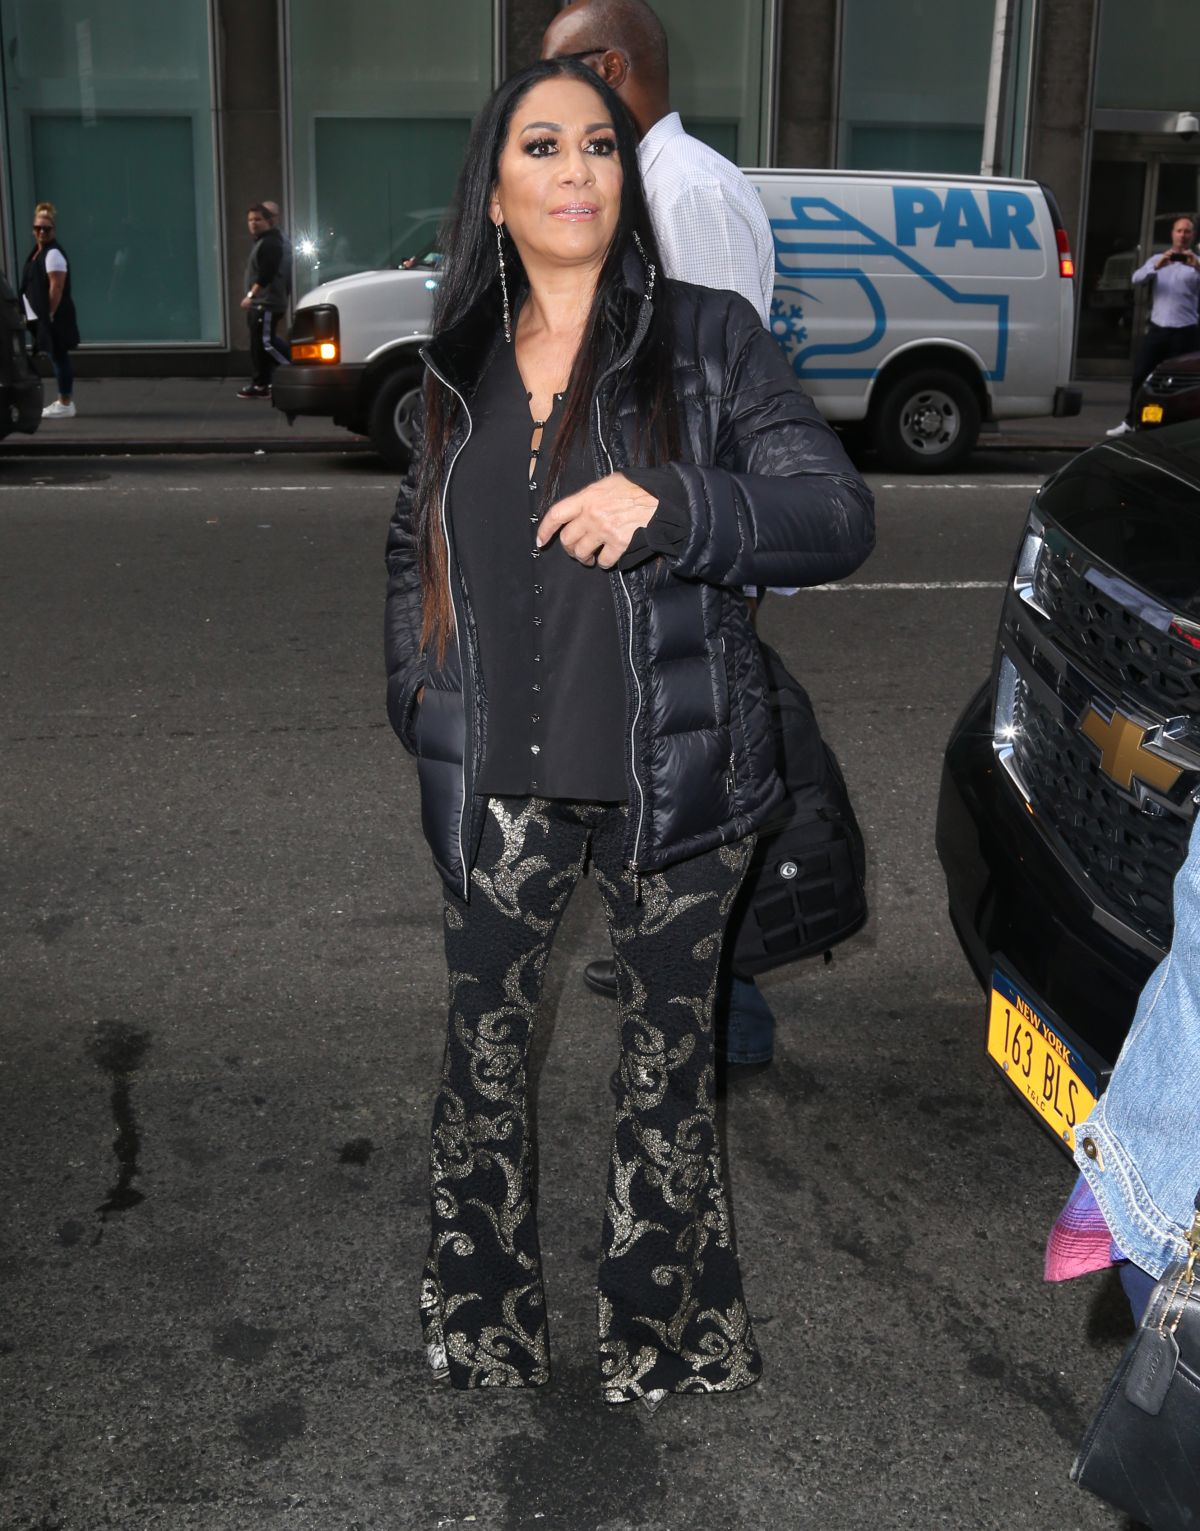 Sheila E. Seen arriving at Sirius Radio in New York City